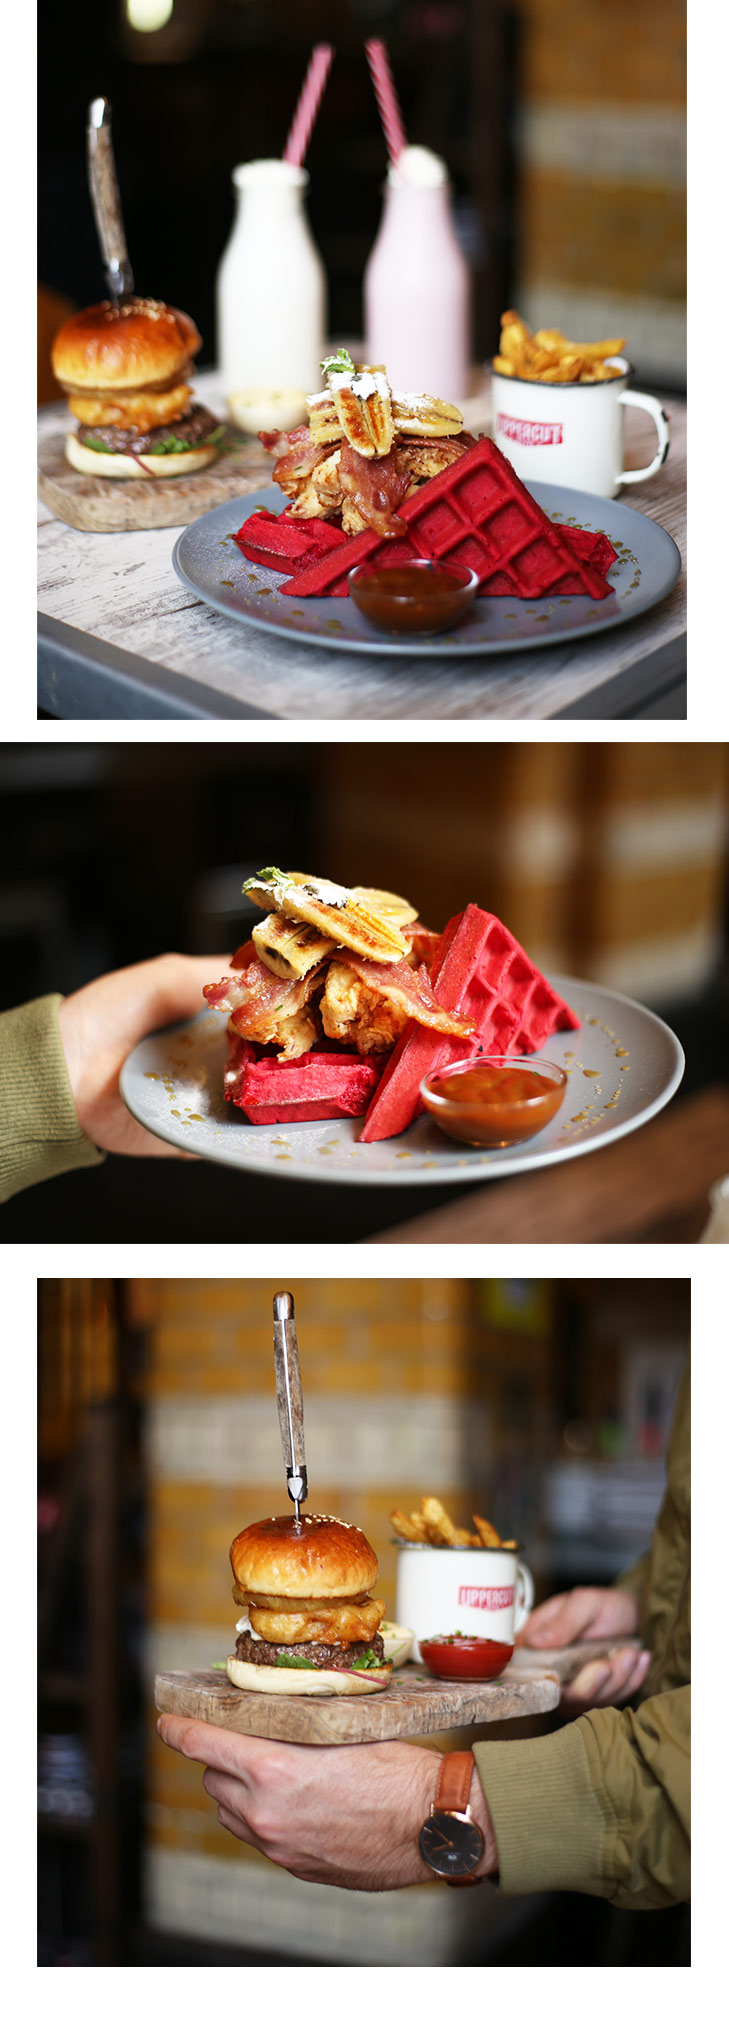 Oh those mouth-watering Chicken 'n Red Velvet Waffles with Surf 'n Turf Burger. Photo by May Leong.